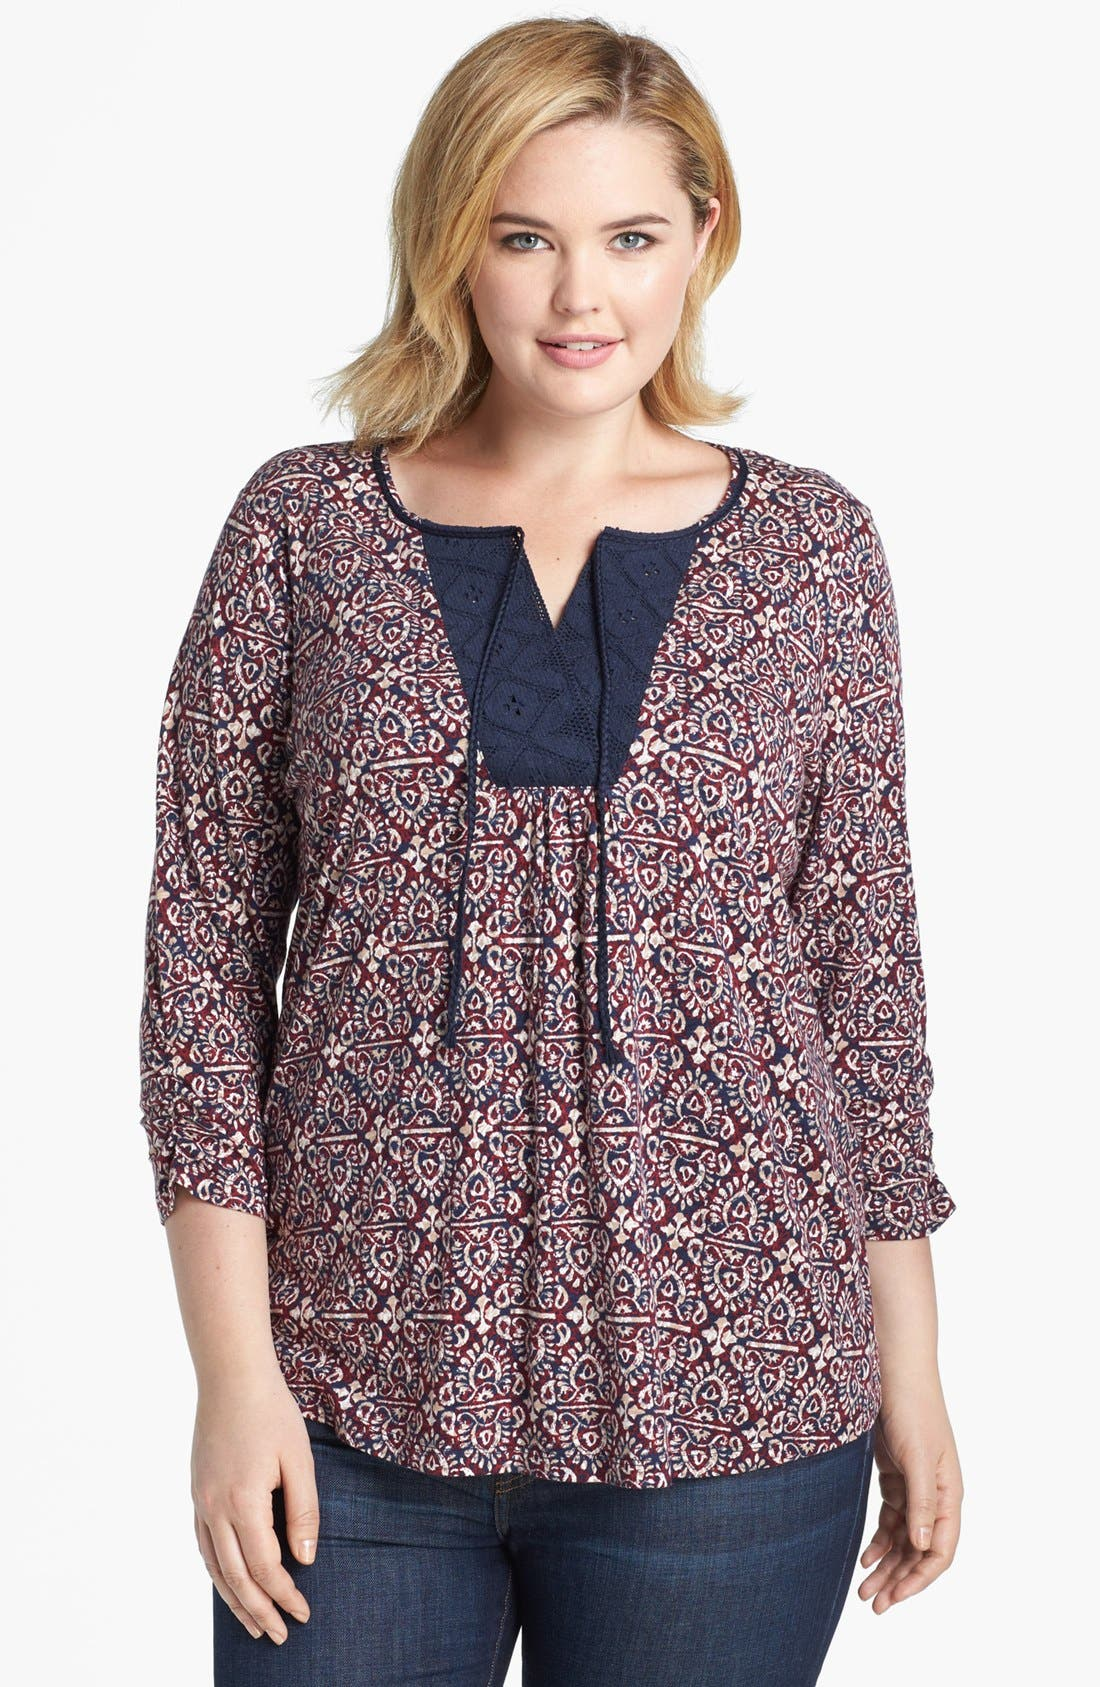 Alternate Image 1 Selected - Lucky Brand 'Moroccan' Print Top (Plus Size)